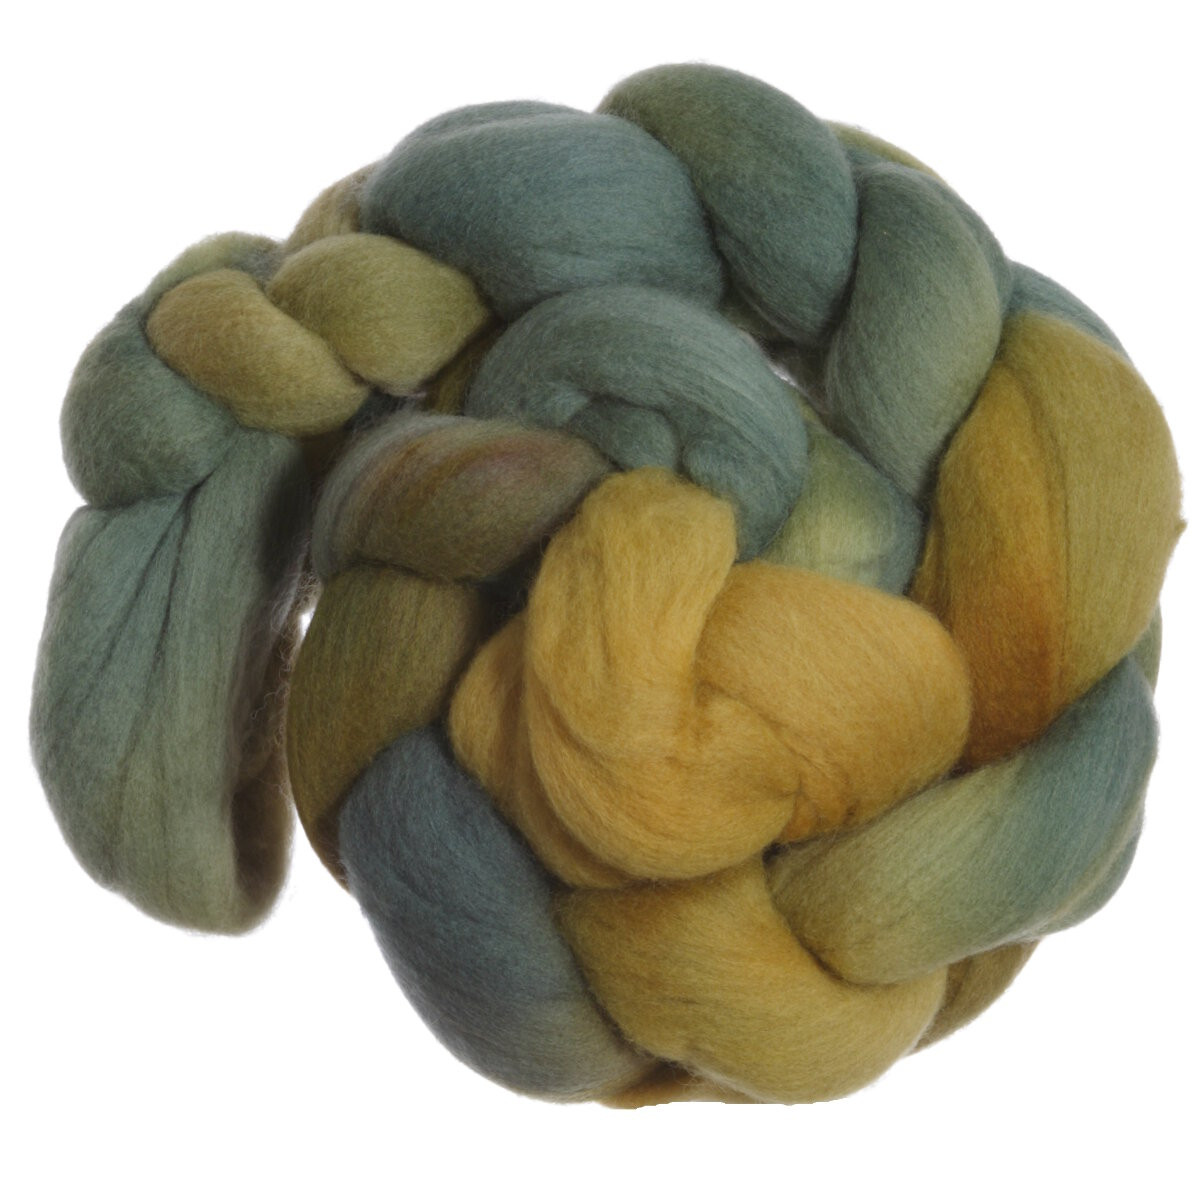 Awesome Manos Del Uruguay Merino Roving Yarn Video Reviews at Wool Roving Yarn Of Awesome 40 Pictures Wool Roving Yarn